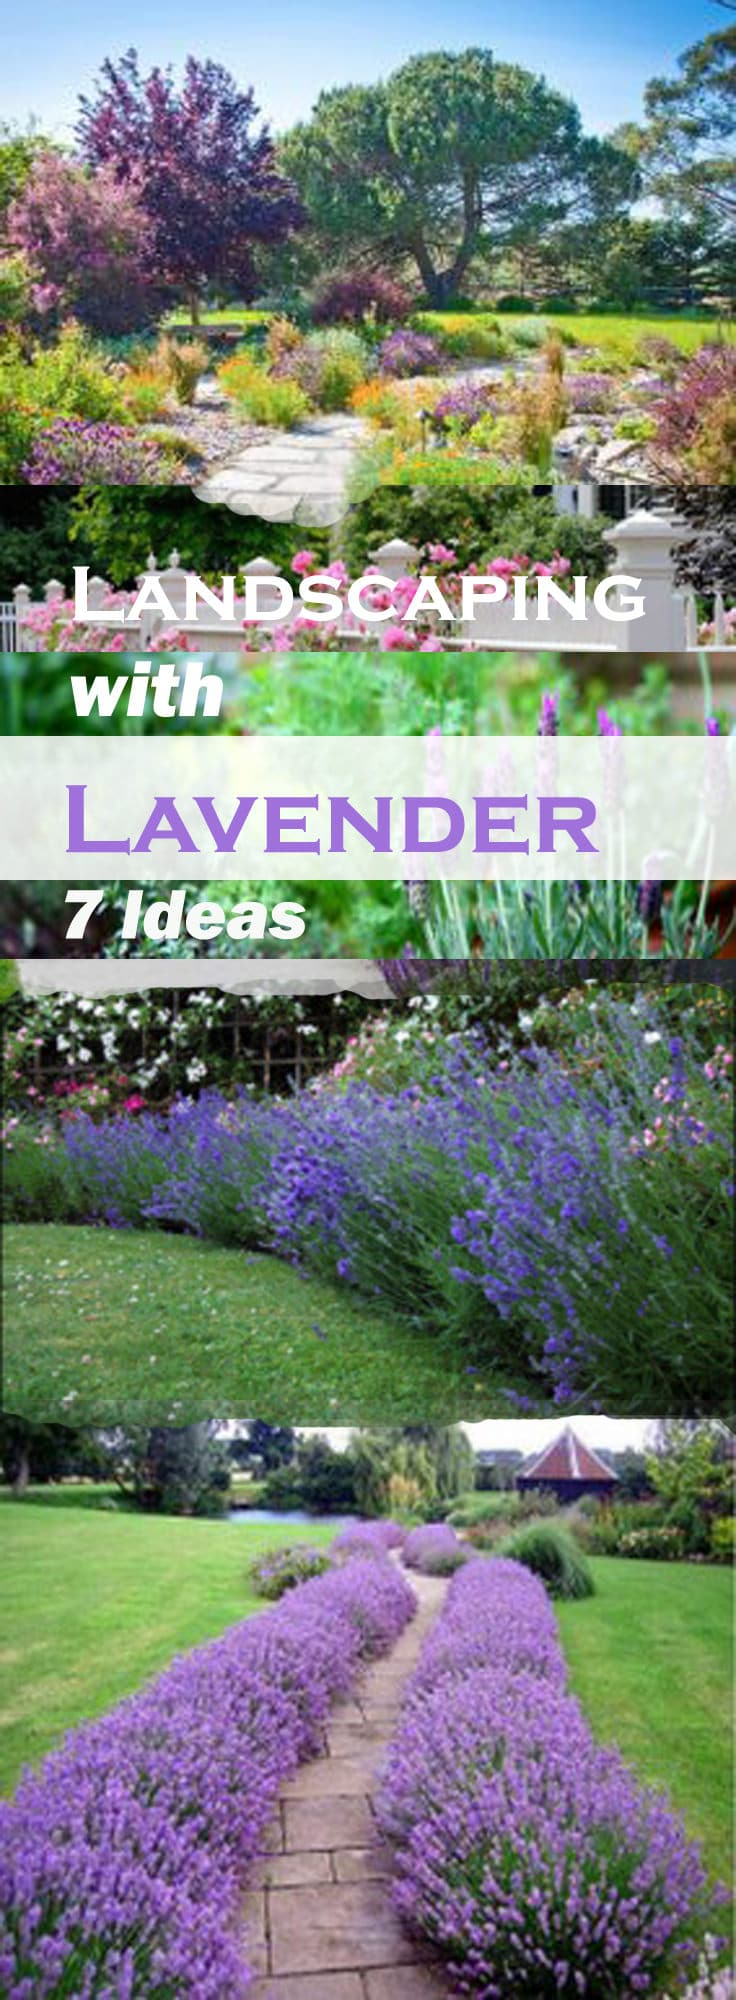 Landscaping with lavender 7 garden design ideas for Landscape garden ideas pictures